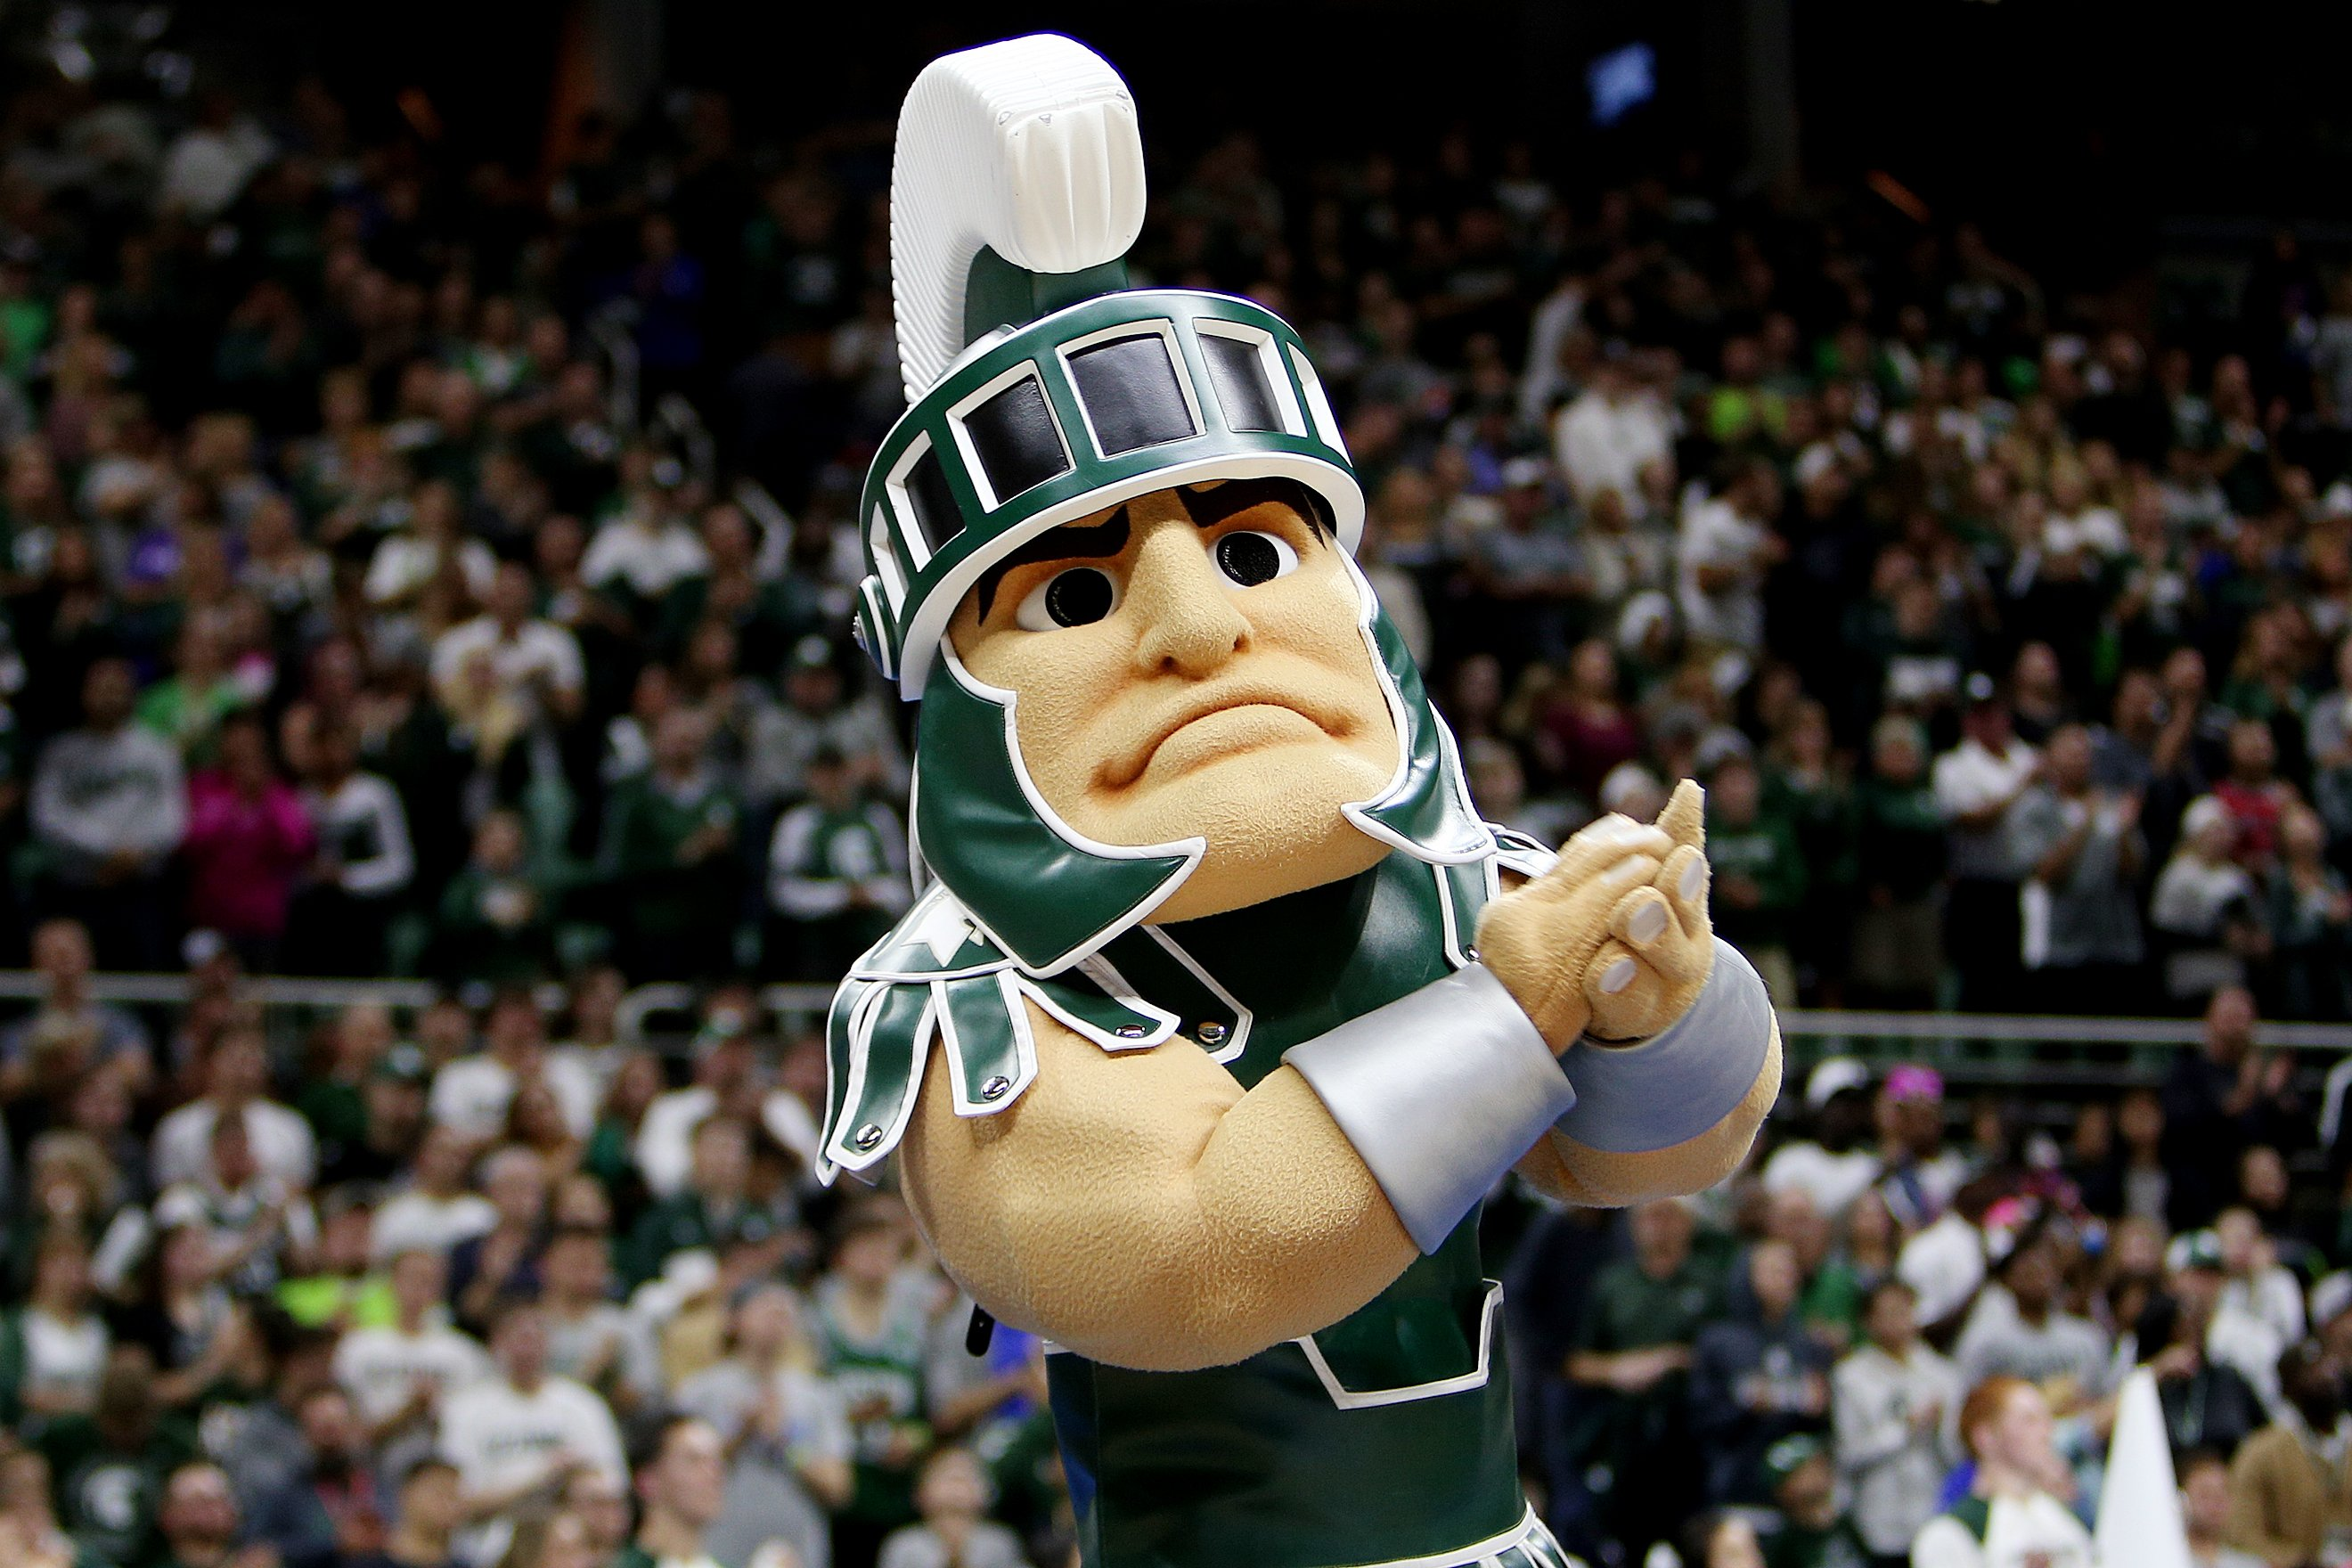 Big Ten Power Poll: Brutus still brutal, Goldy still golden, and Sparty in ill mood should make Penn State nervous